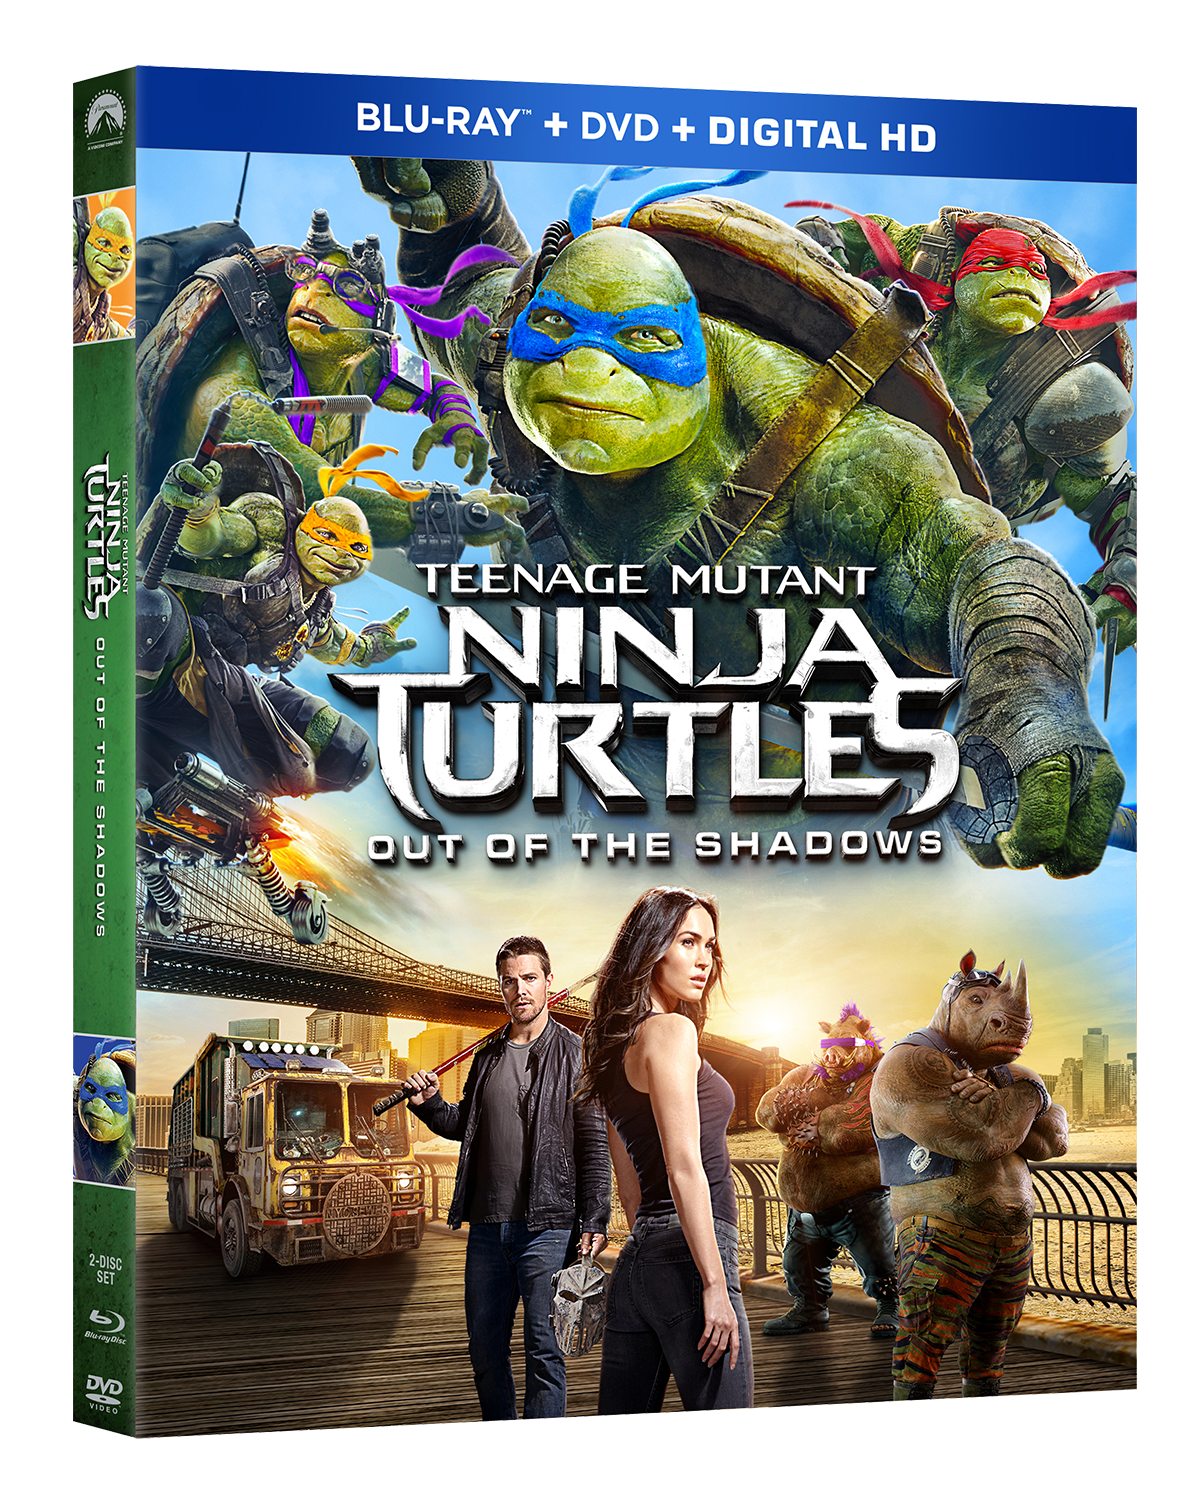 Teenage Mutant Ninja Turtles Out Of The Shadows Arrives On Blu Ray Sept 20th And Digital Hd Sept 6th Justlovemovies Com